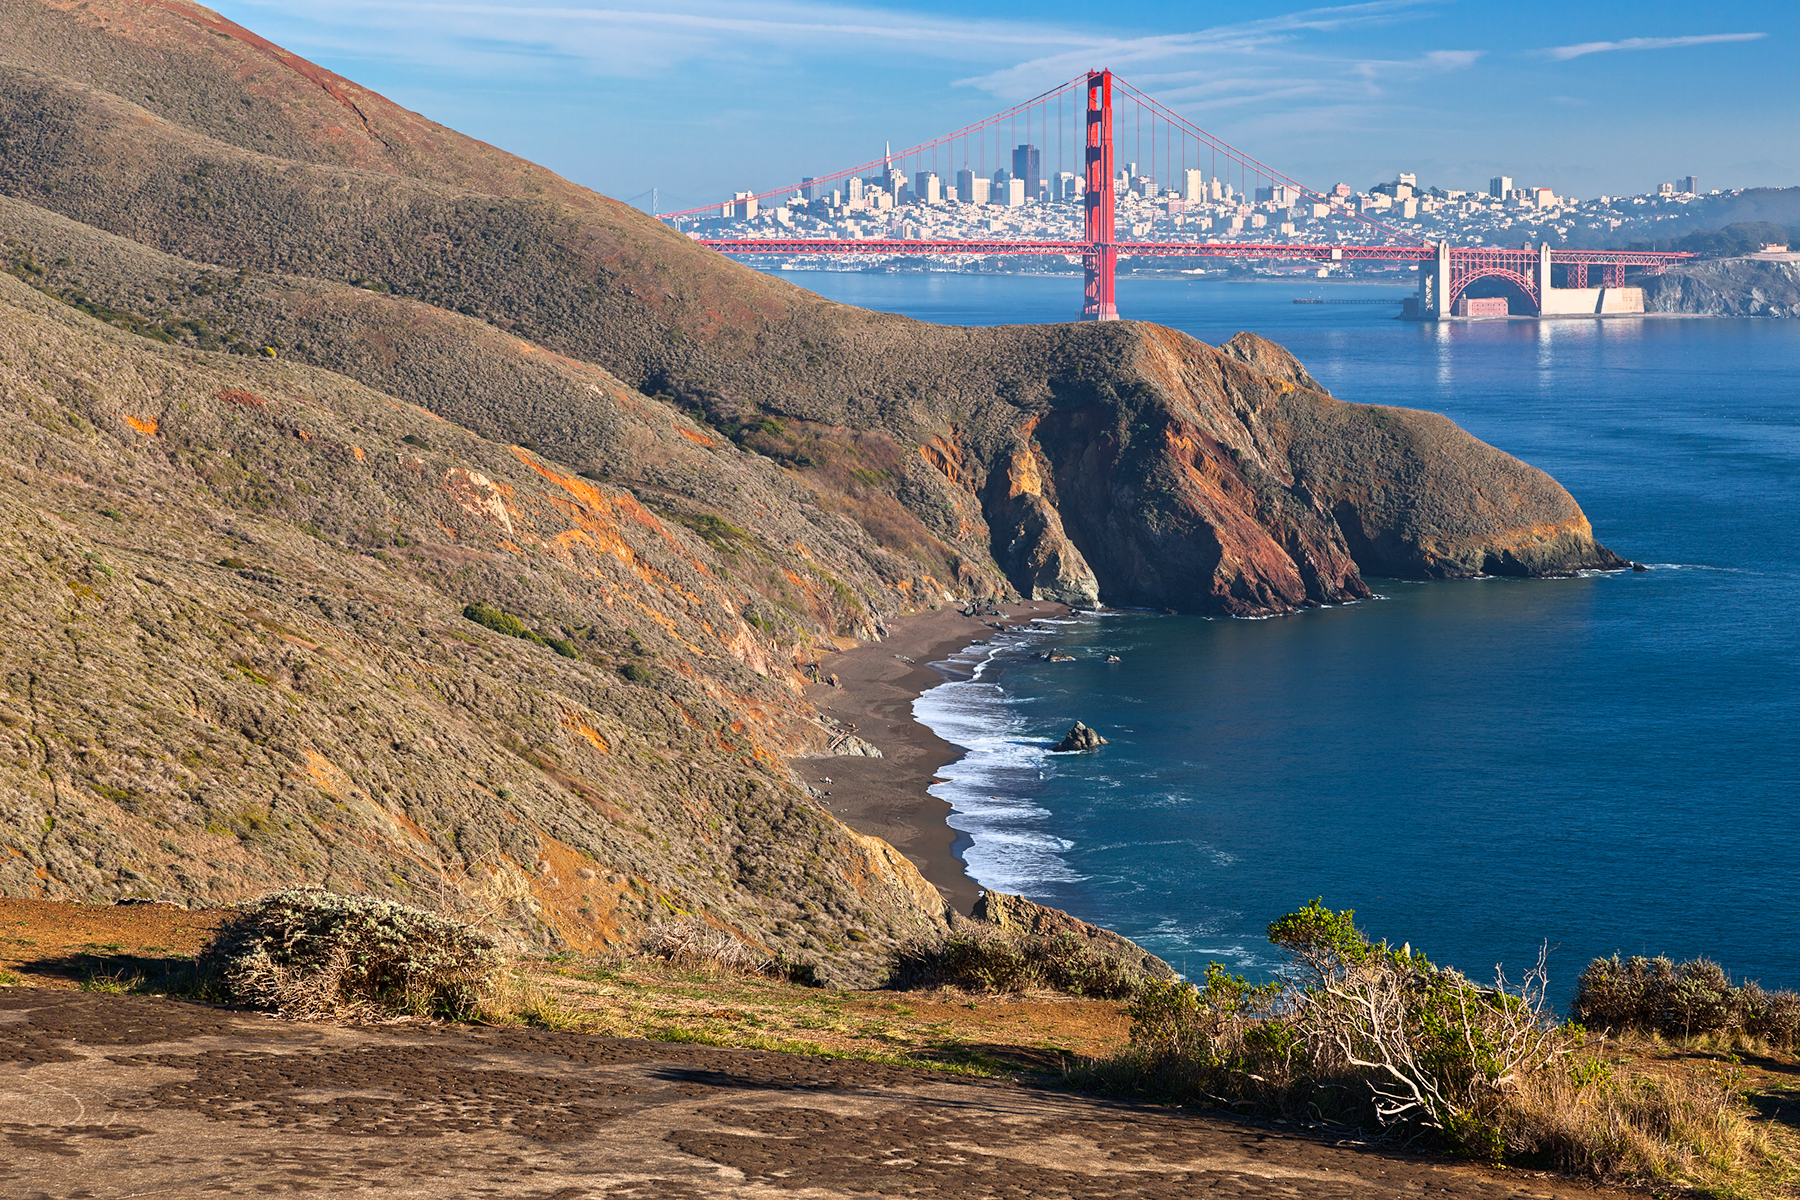 San francisco & golden gate - hdr photo